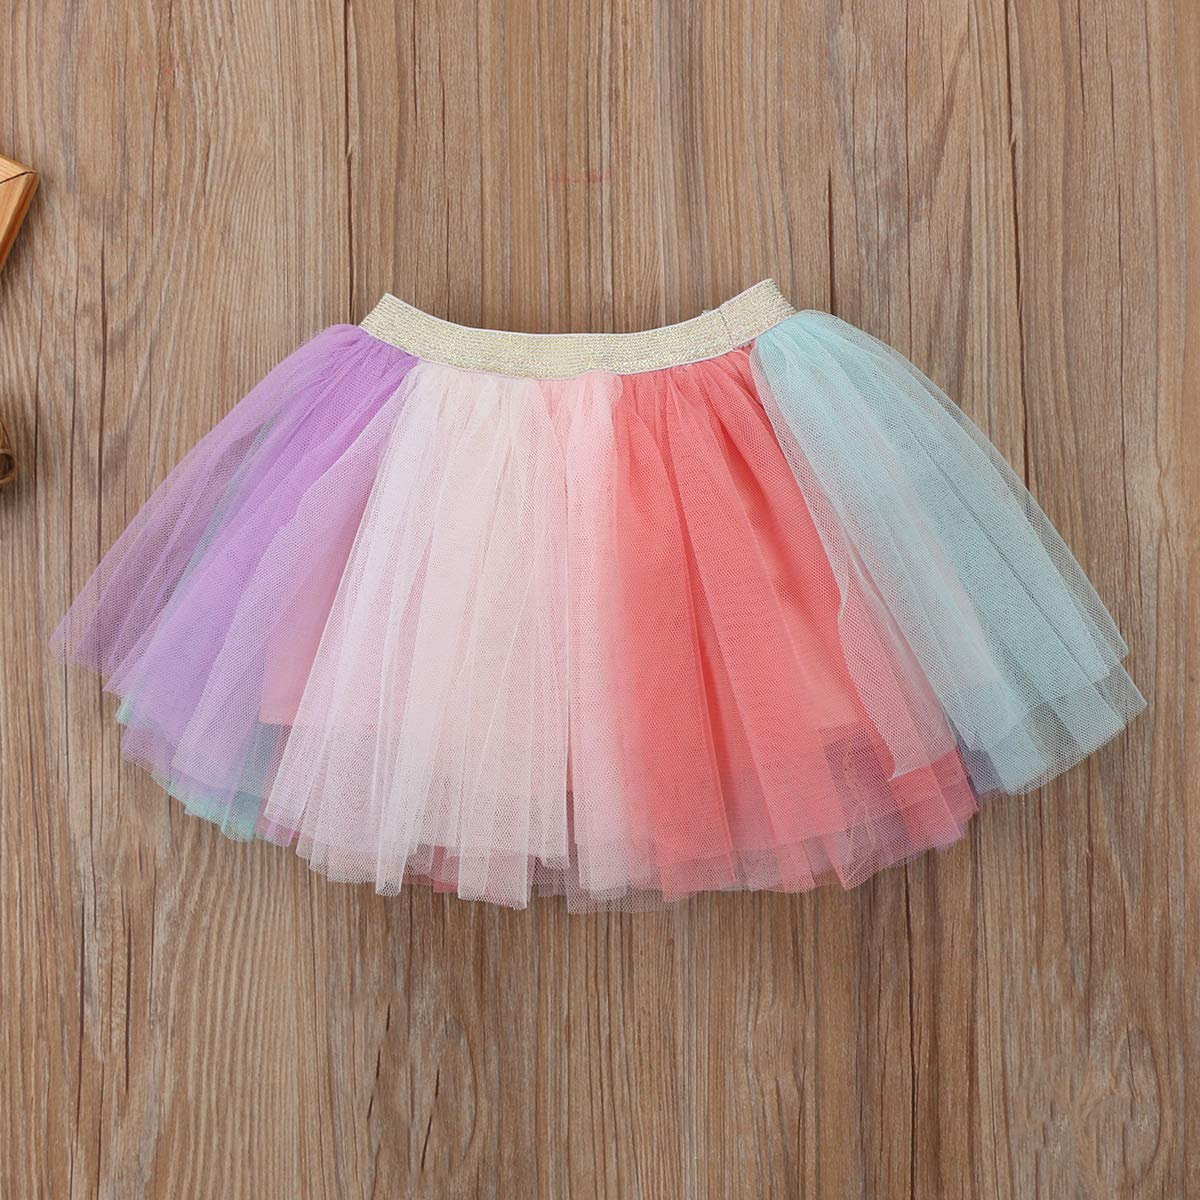 Baby Girl Unicorn T-Shirt Tops+Colorful Tutu Lace Skirts Outfits Clothes Kids Summer Fashion Skirts 2pcs